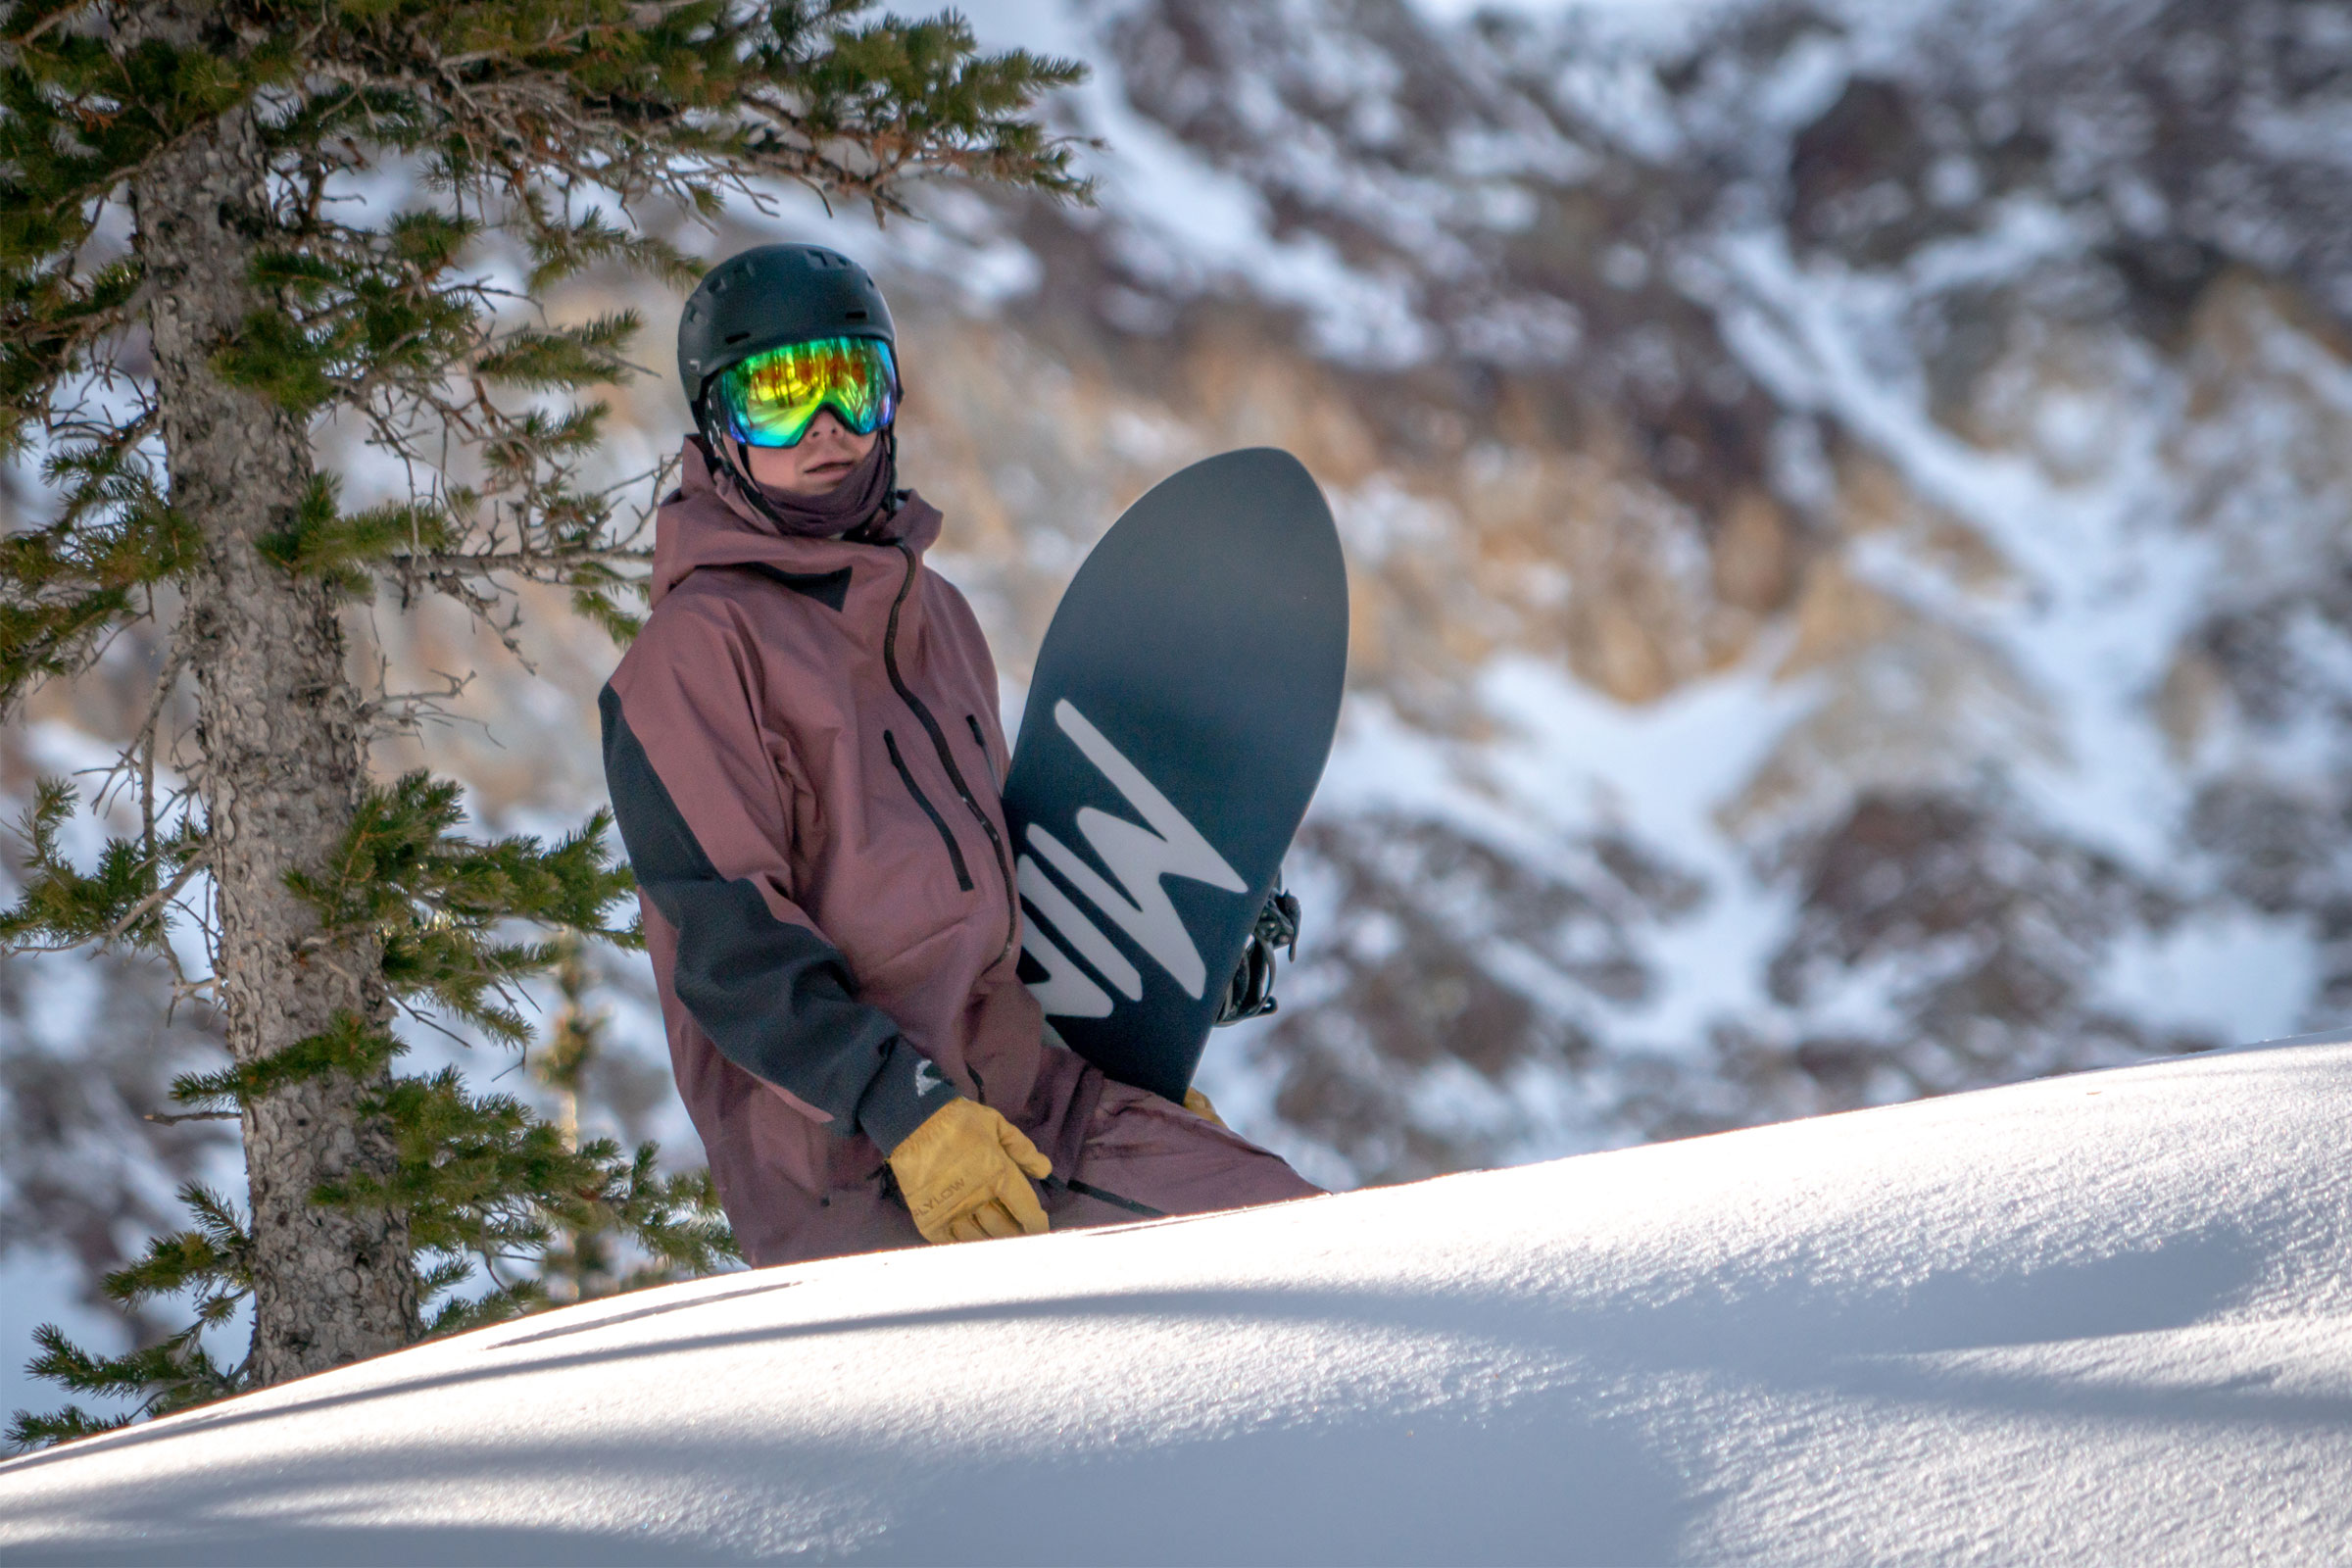 Rider wearing Burton's Mine 77 kit and mittens carrying snowboard uphill